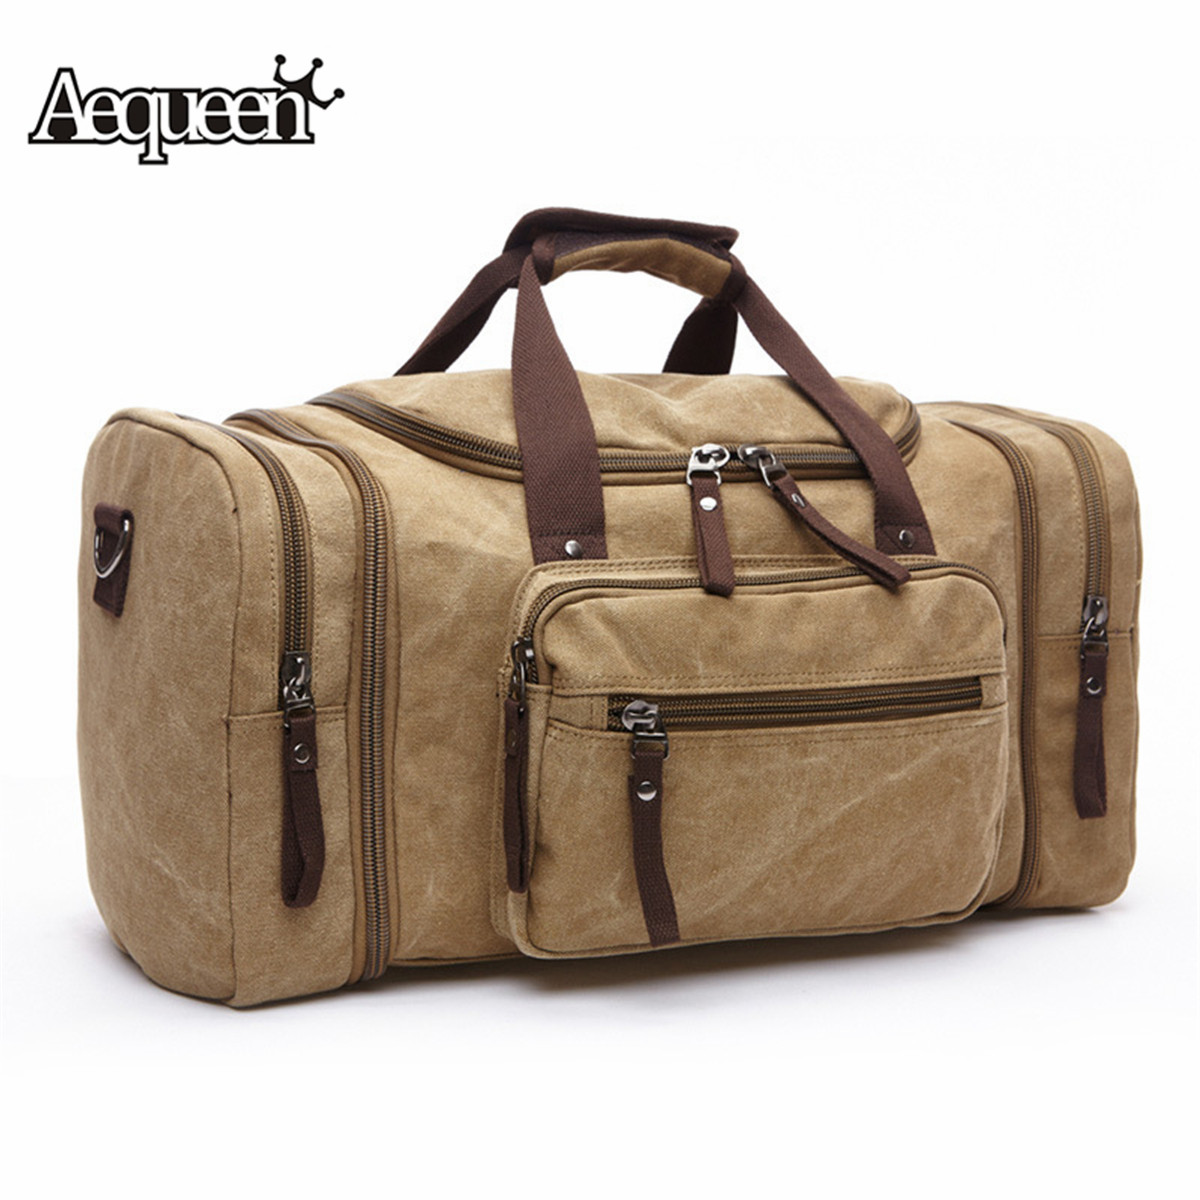 AEQUEEN Soft Canvas Men Travel Bags Carry On Luggage Bags Men Duffel Bag Travel Tote Large Weekend Bag Overnight High Capacity